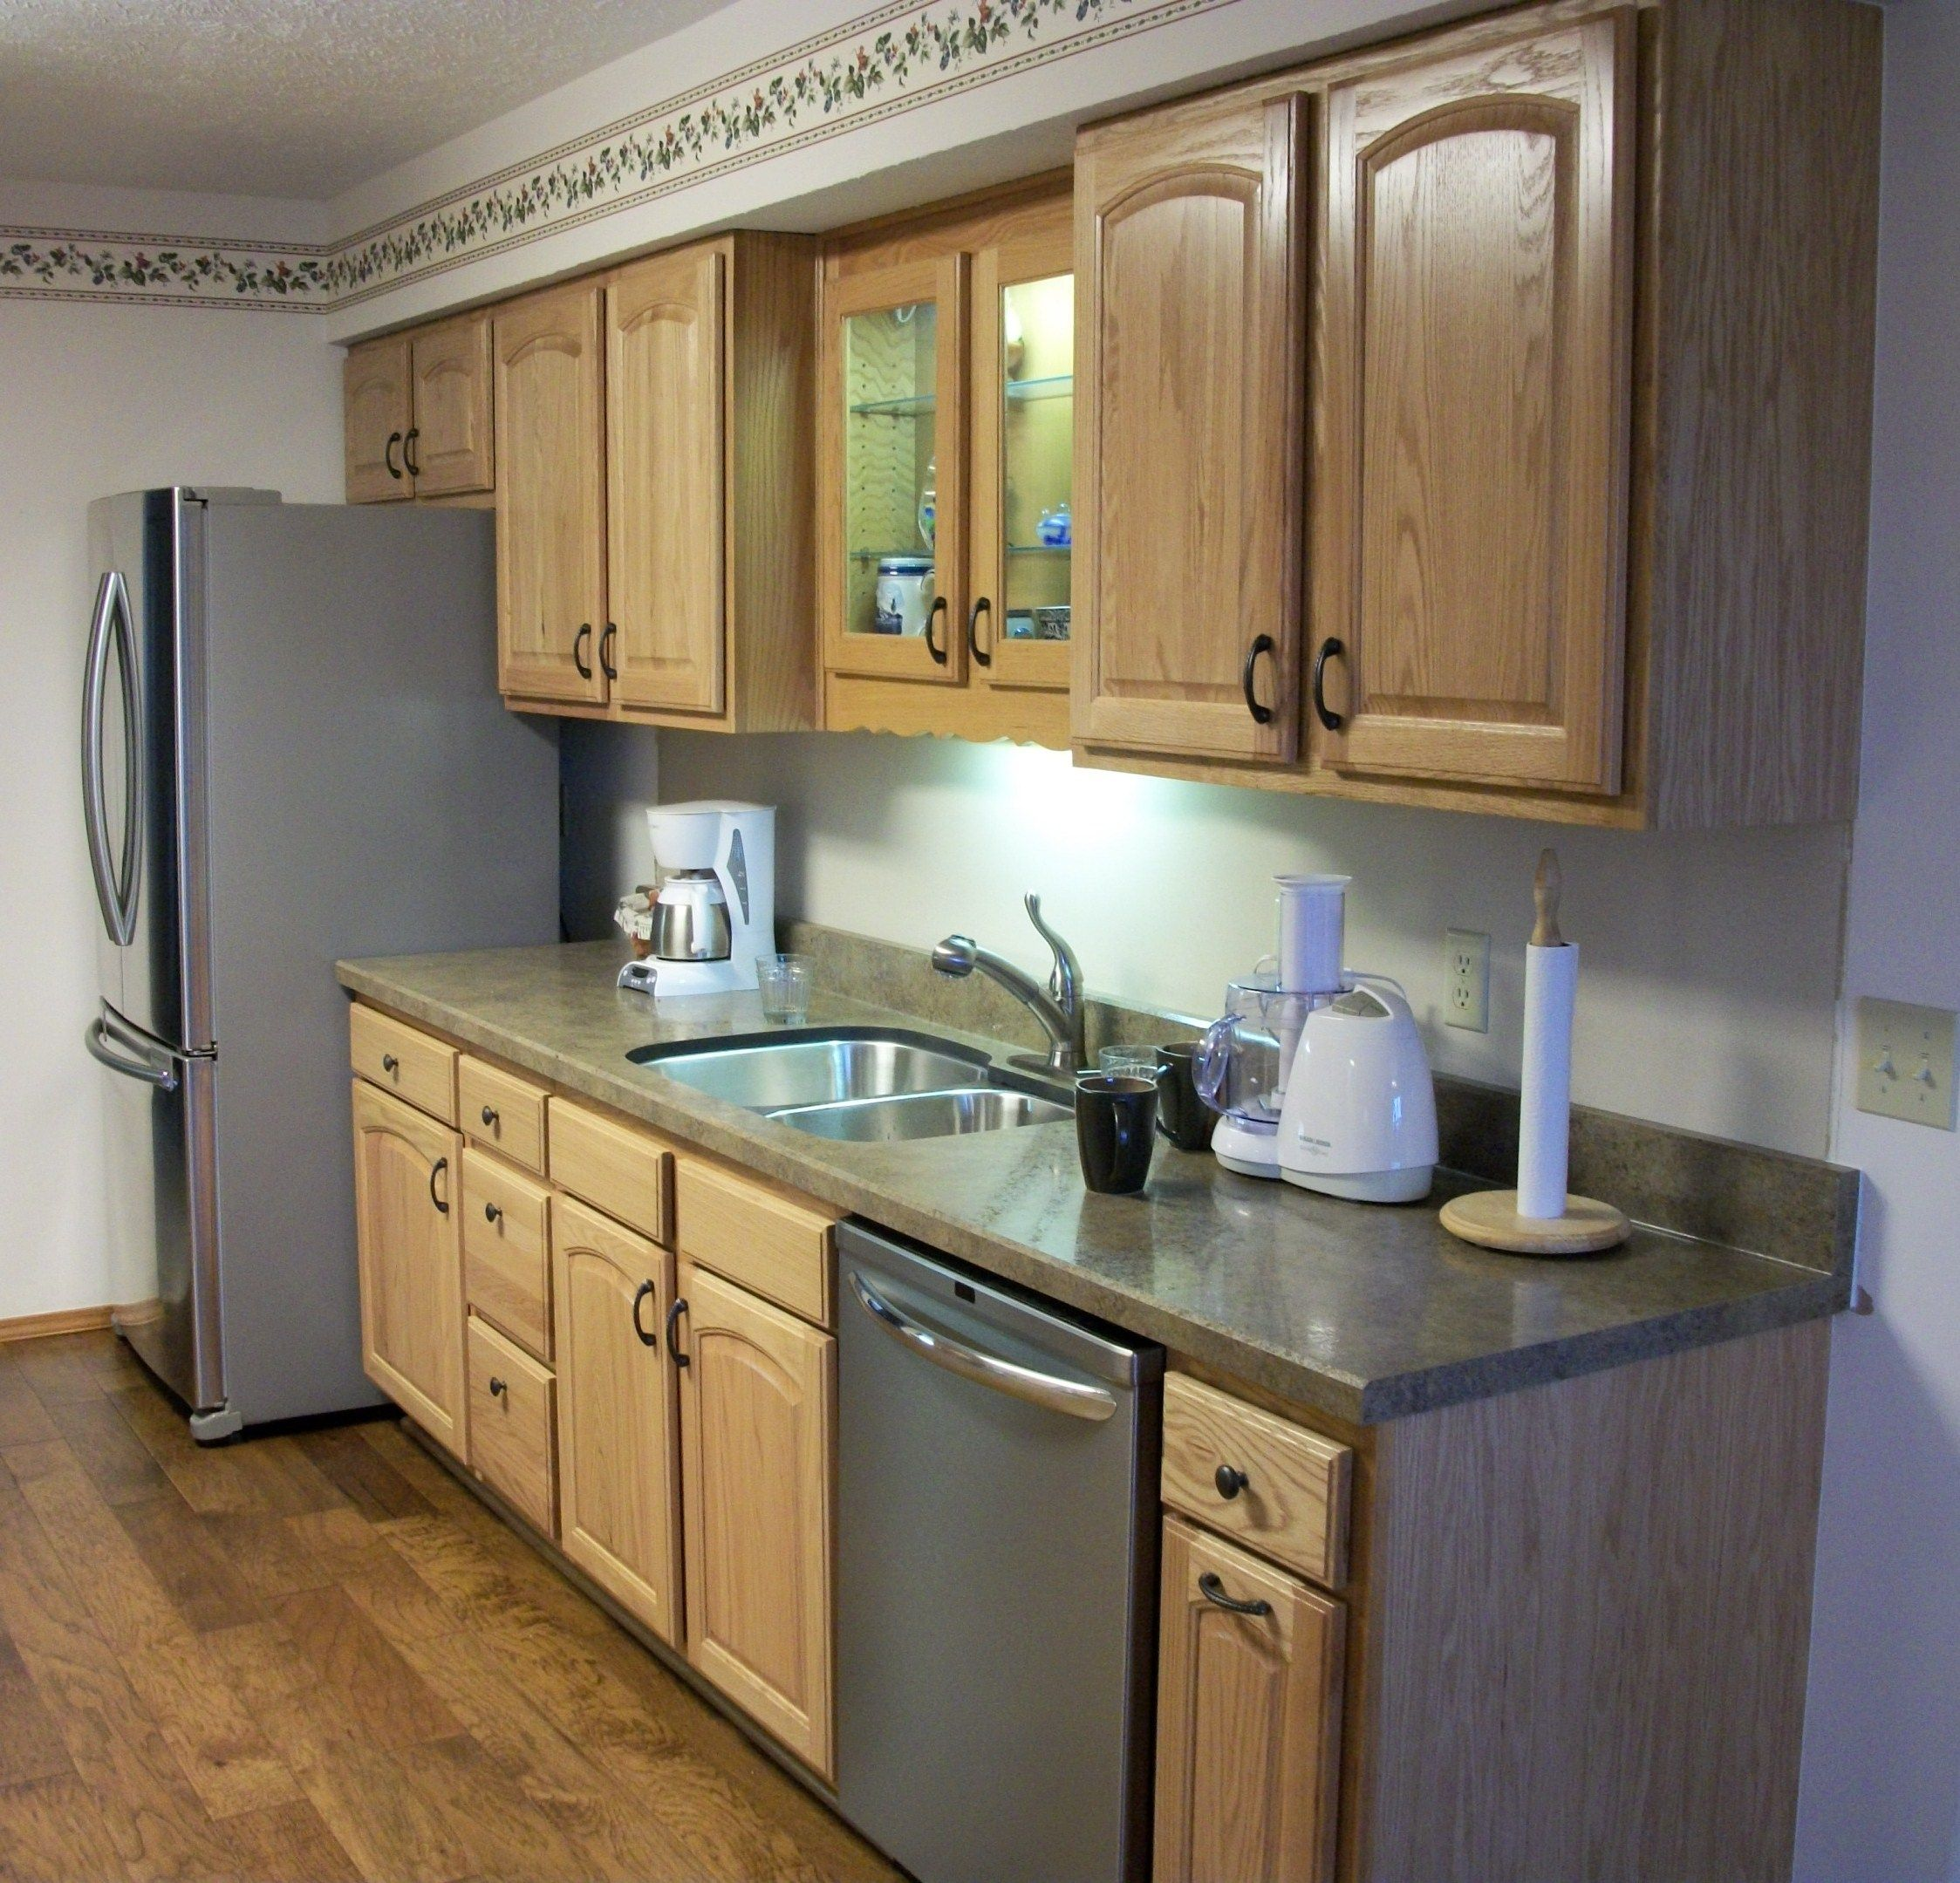 Solid Oak Arched Raised Panel Door Kitchen Www Canarycabinets Com Raised Panel Doors Kitchen Love Your Home